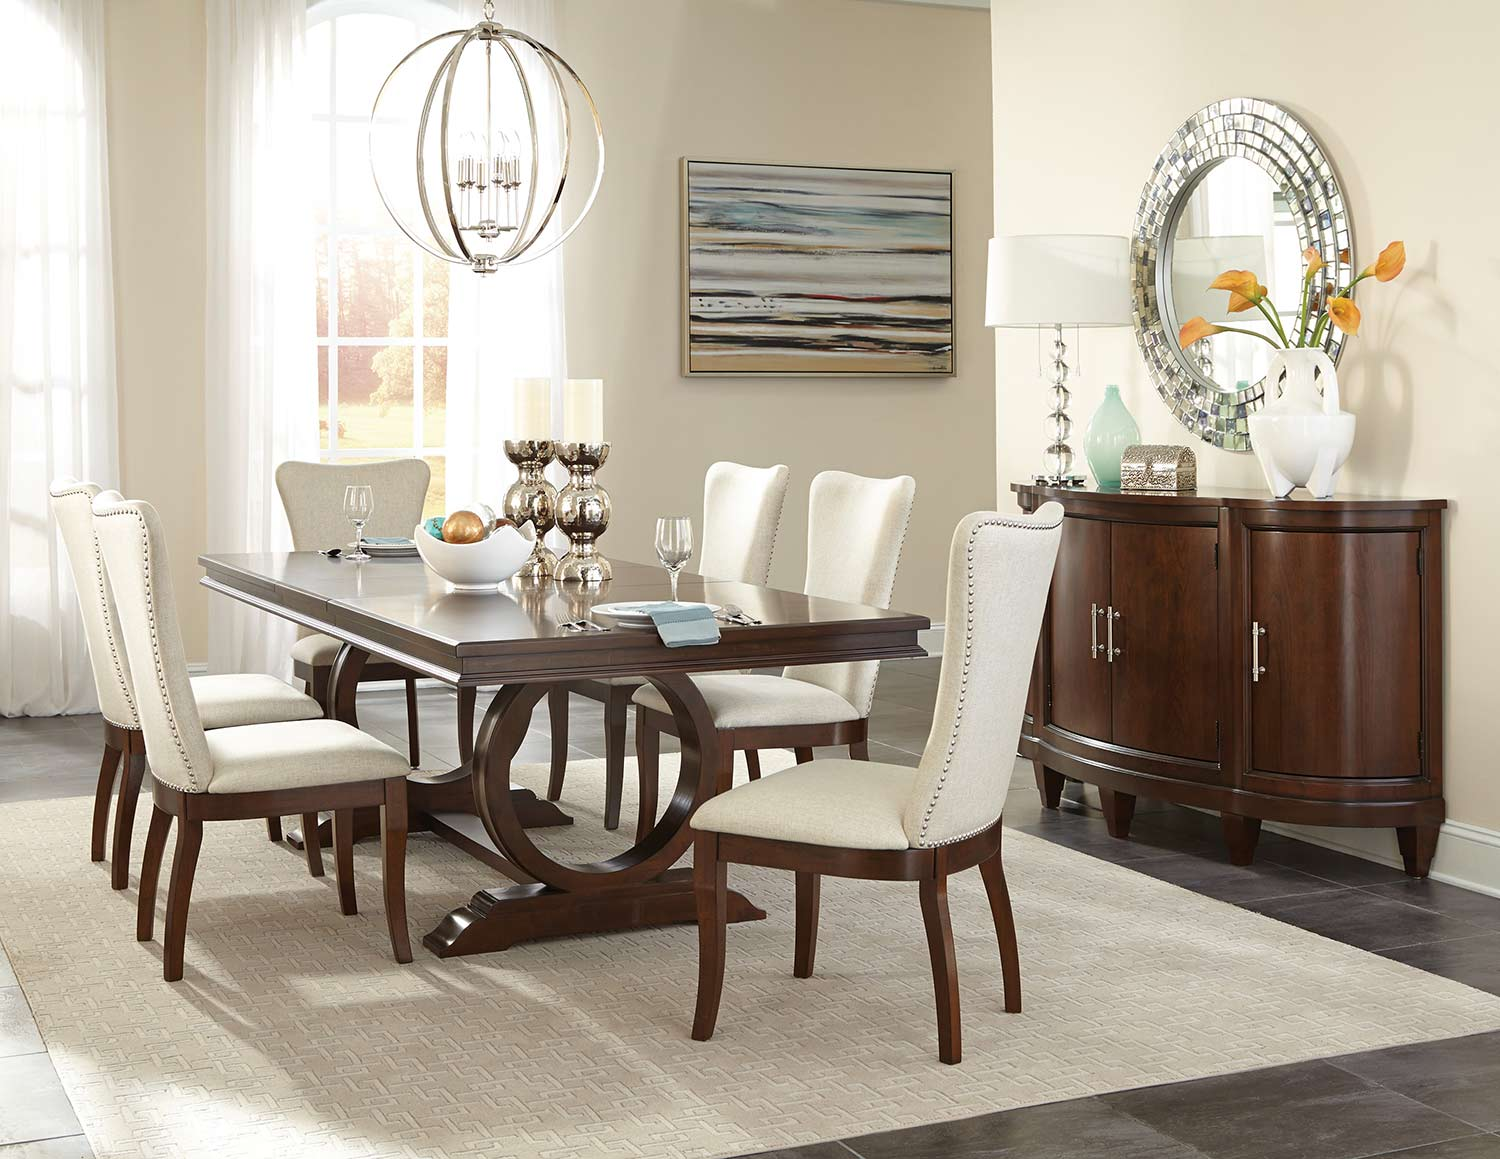 Homelegance Oratorio Dining Set - Cherry